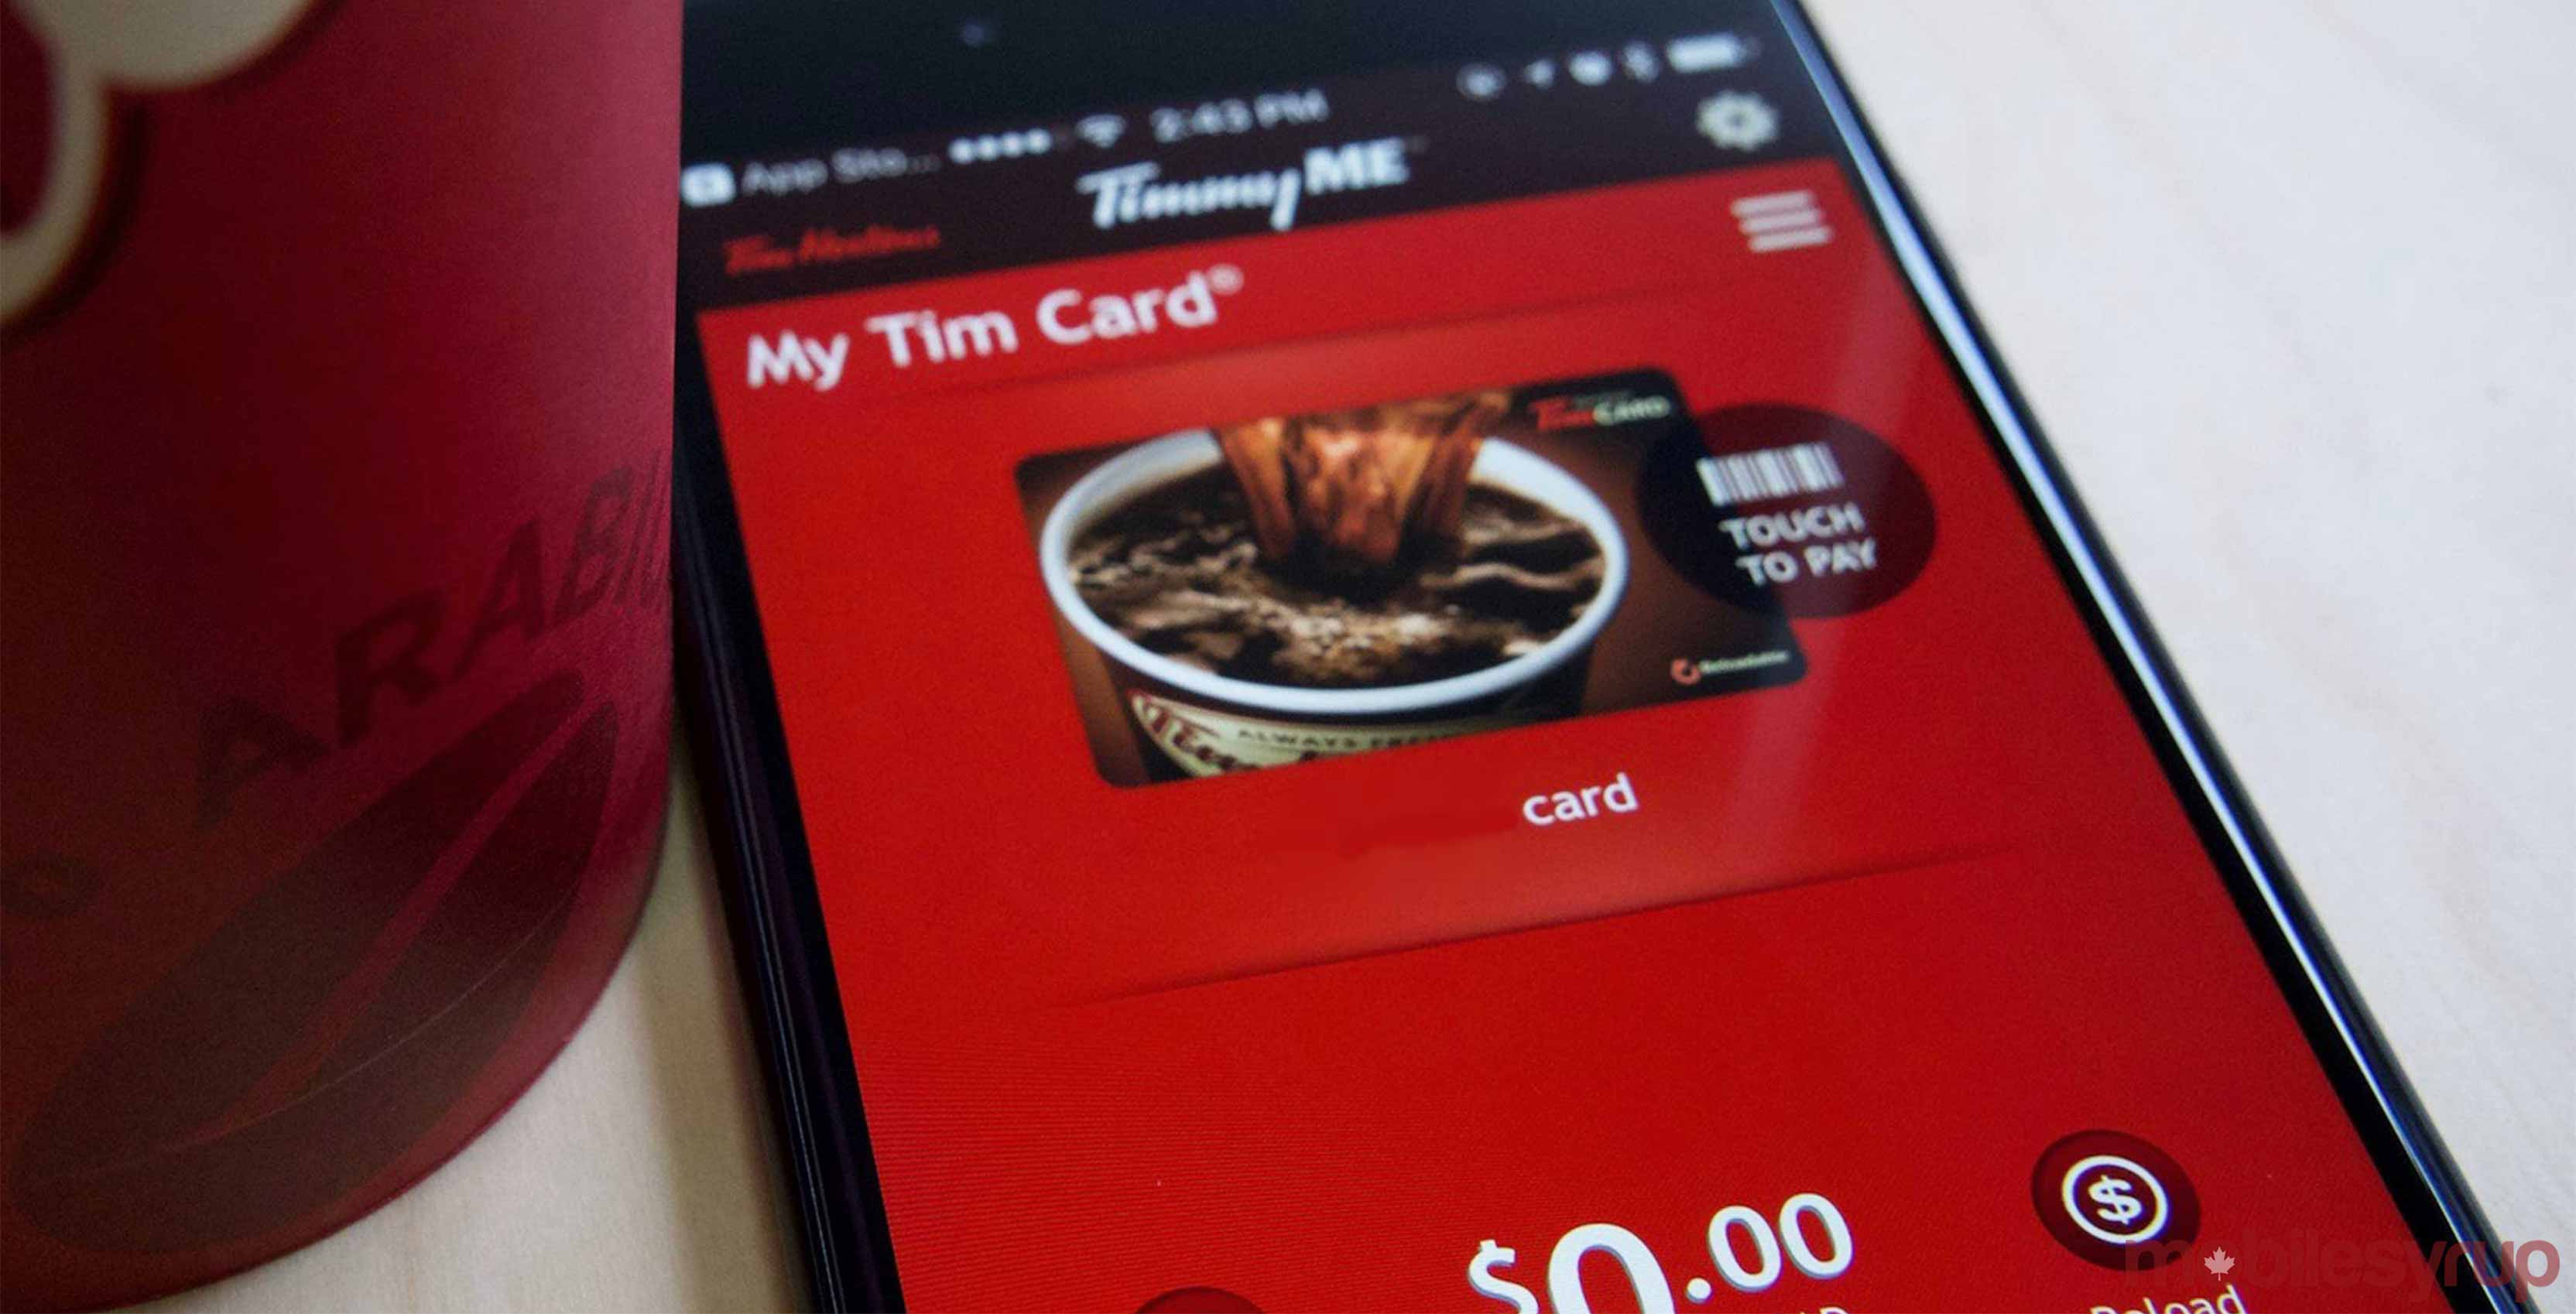 Tim Hortons mobile app